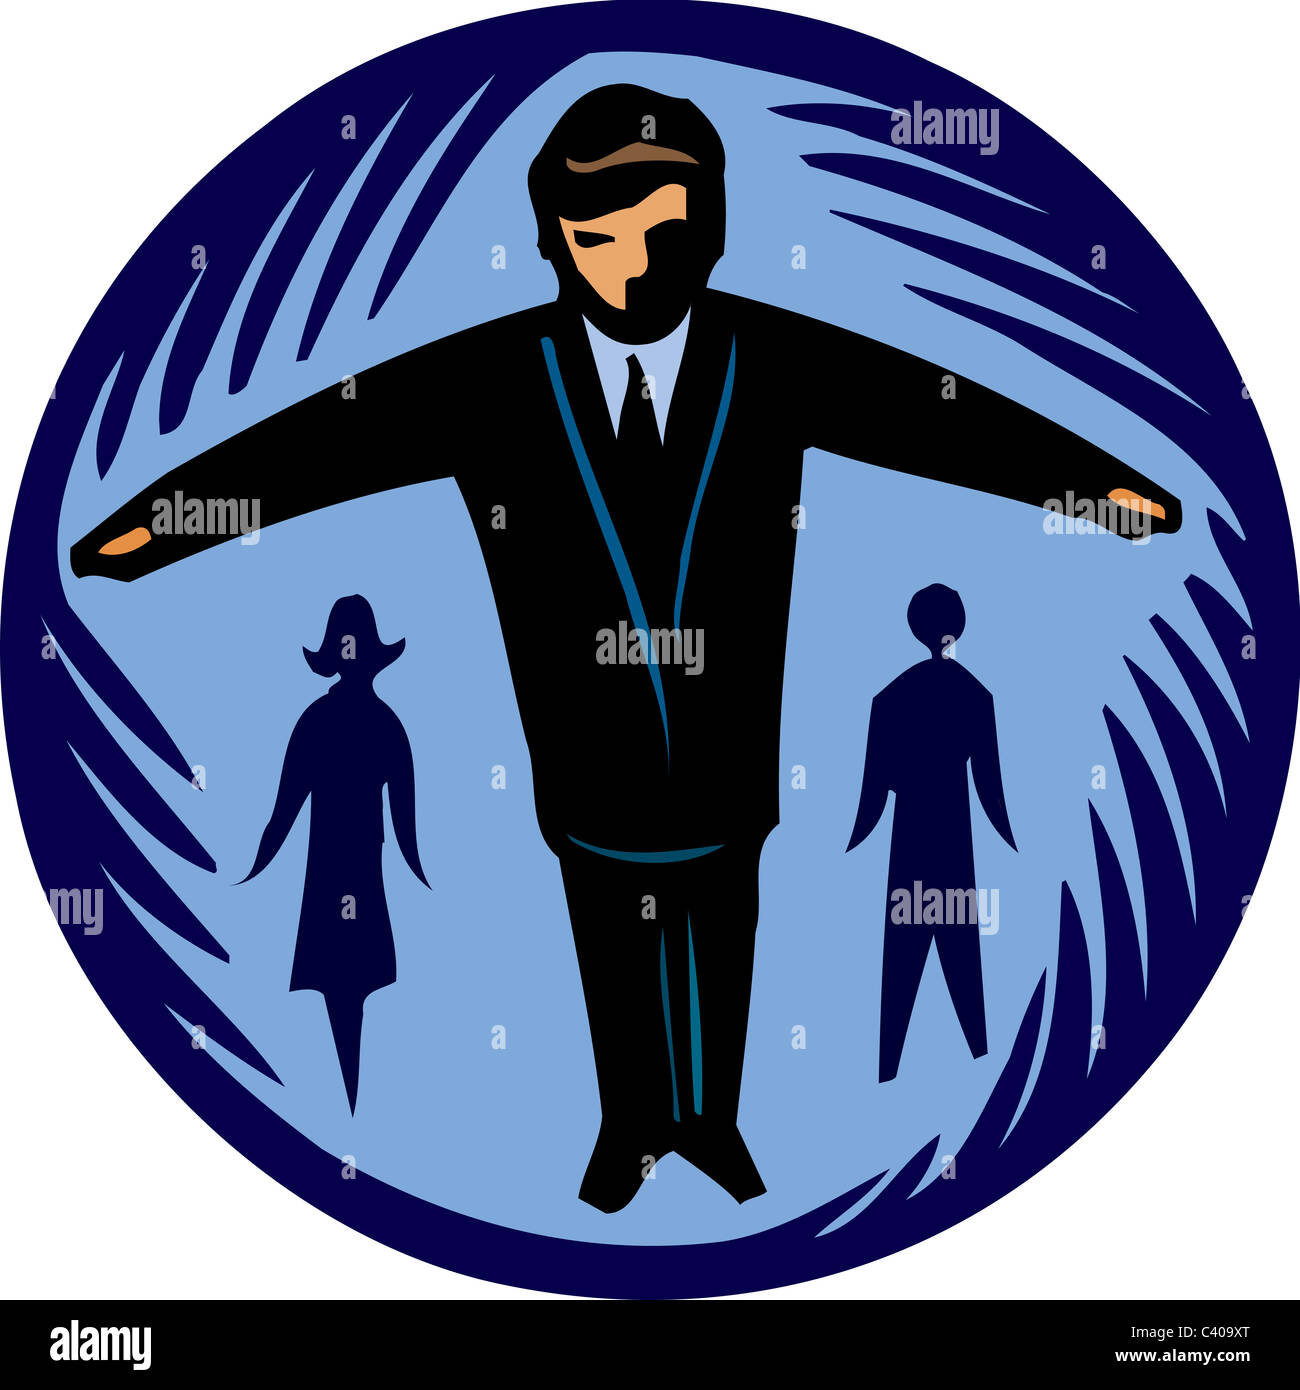 Illustration of a businessman standing with his arms out - Stock Image